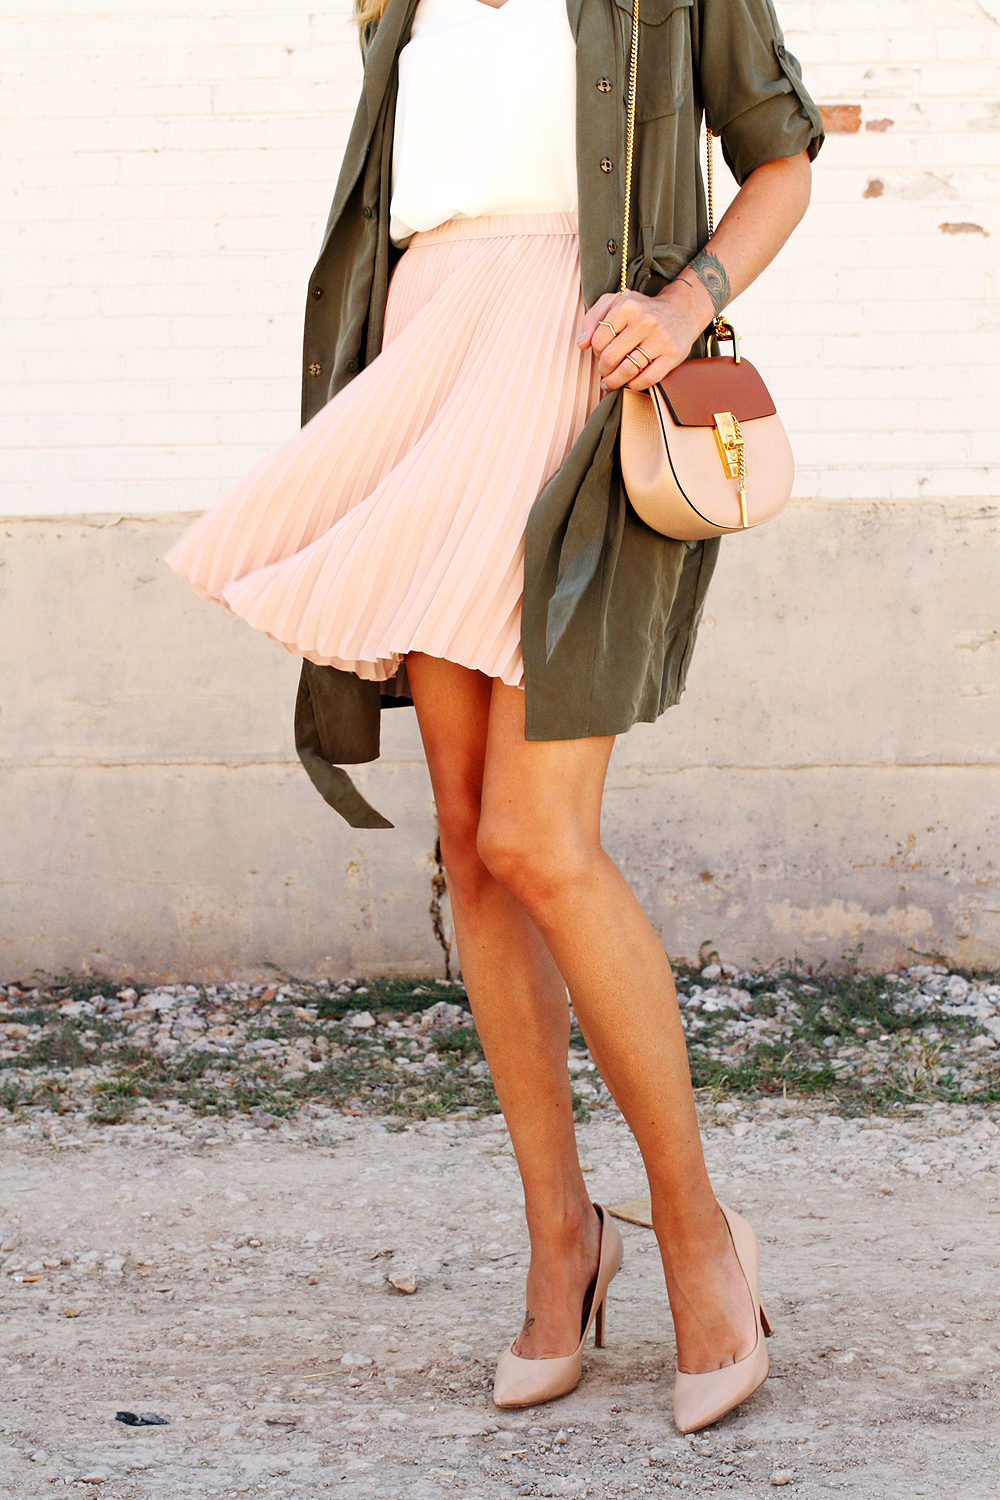 fashion-jackson-banana-republic-blush-pleated-skirt-banana-republic-trench-dress-chloe-drew-handbag-nude-pumps